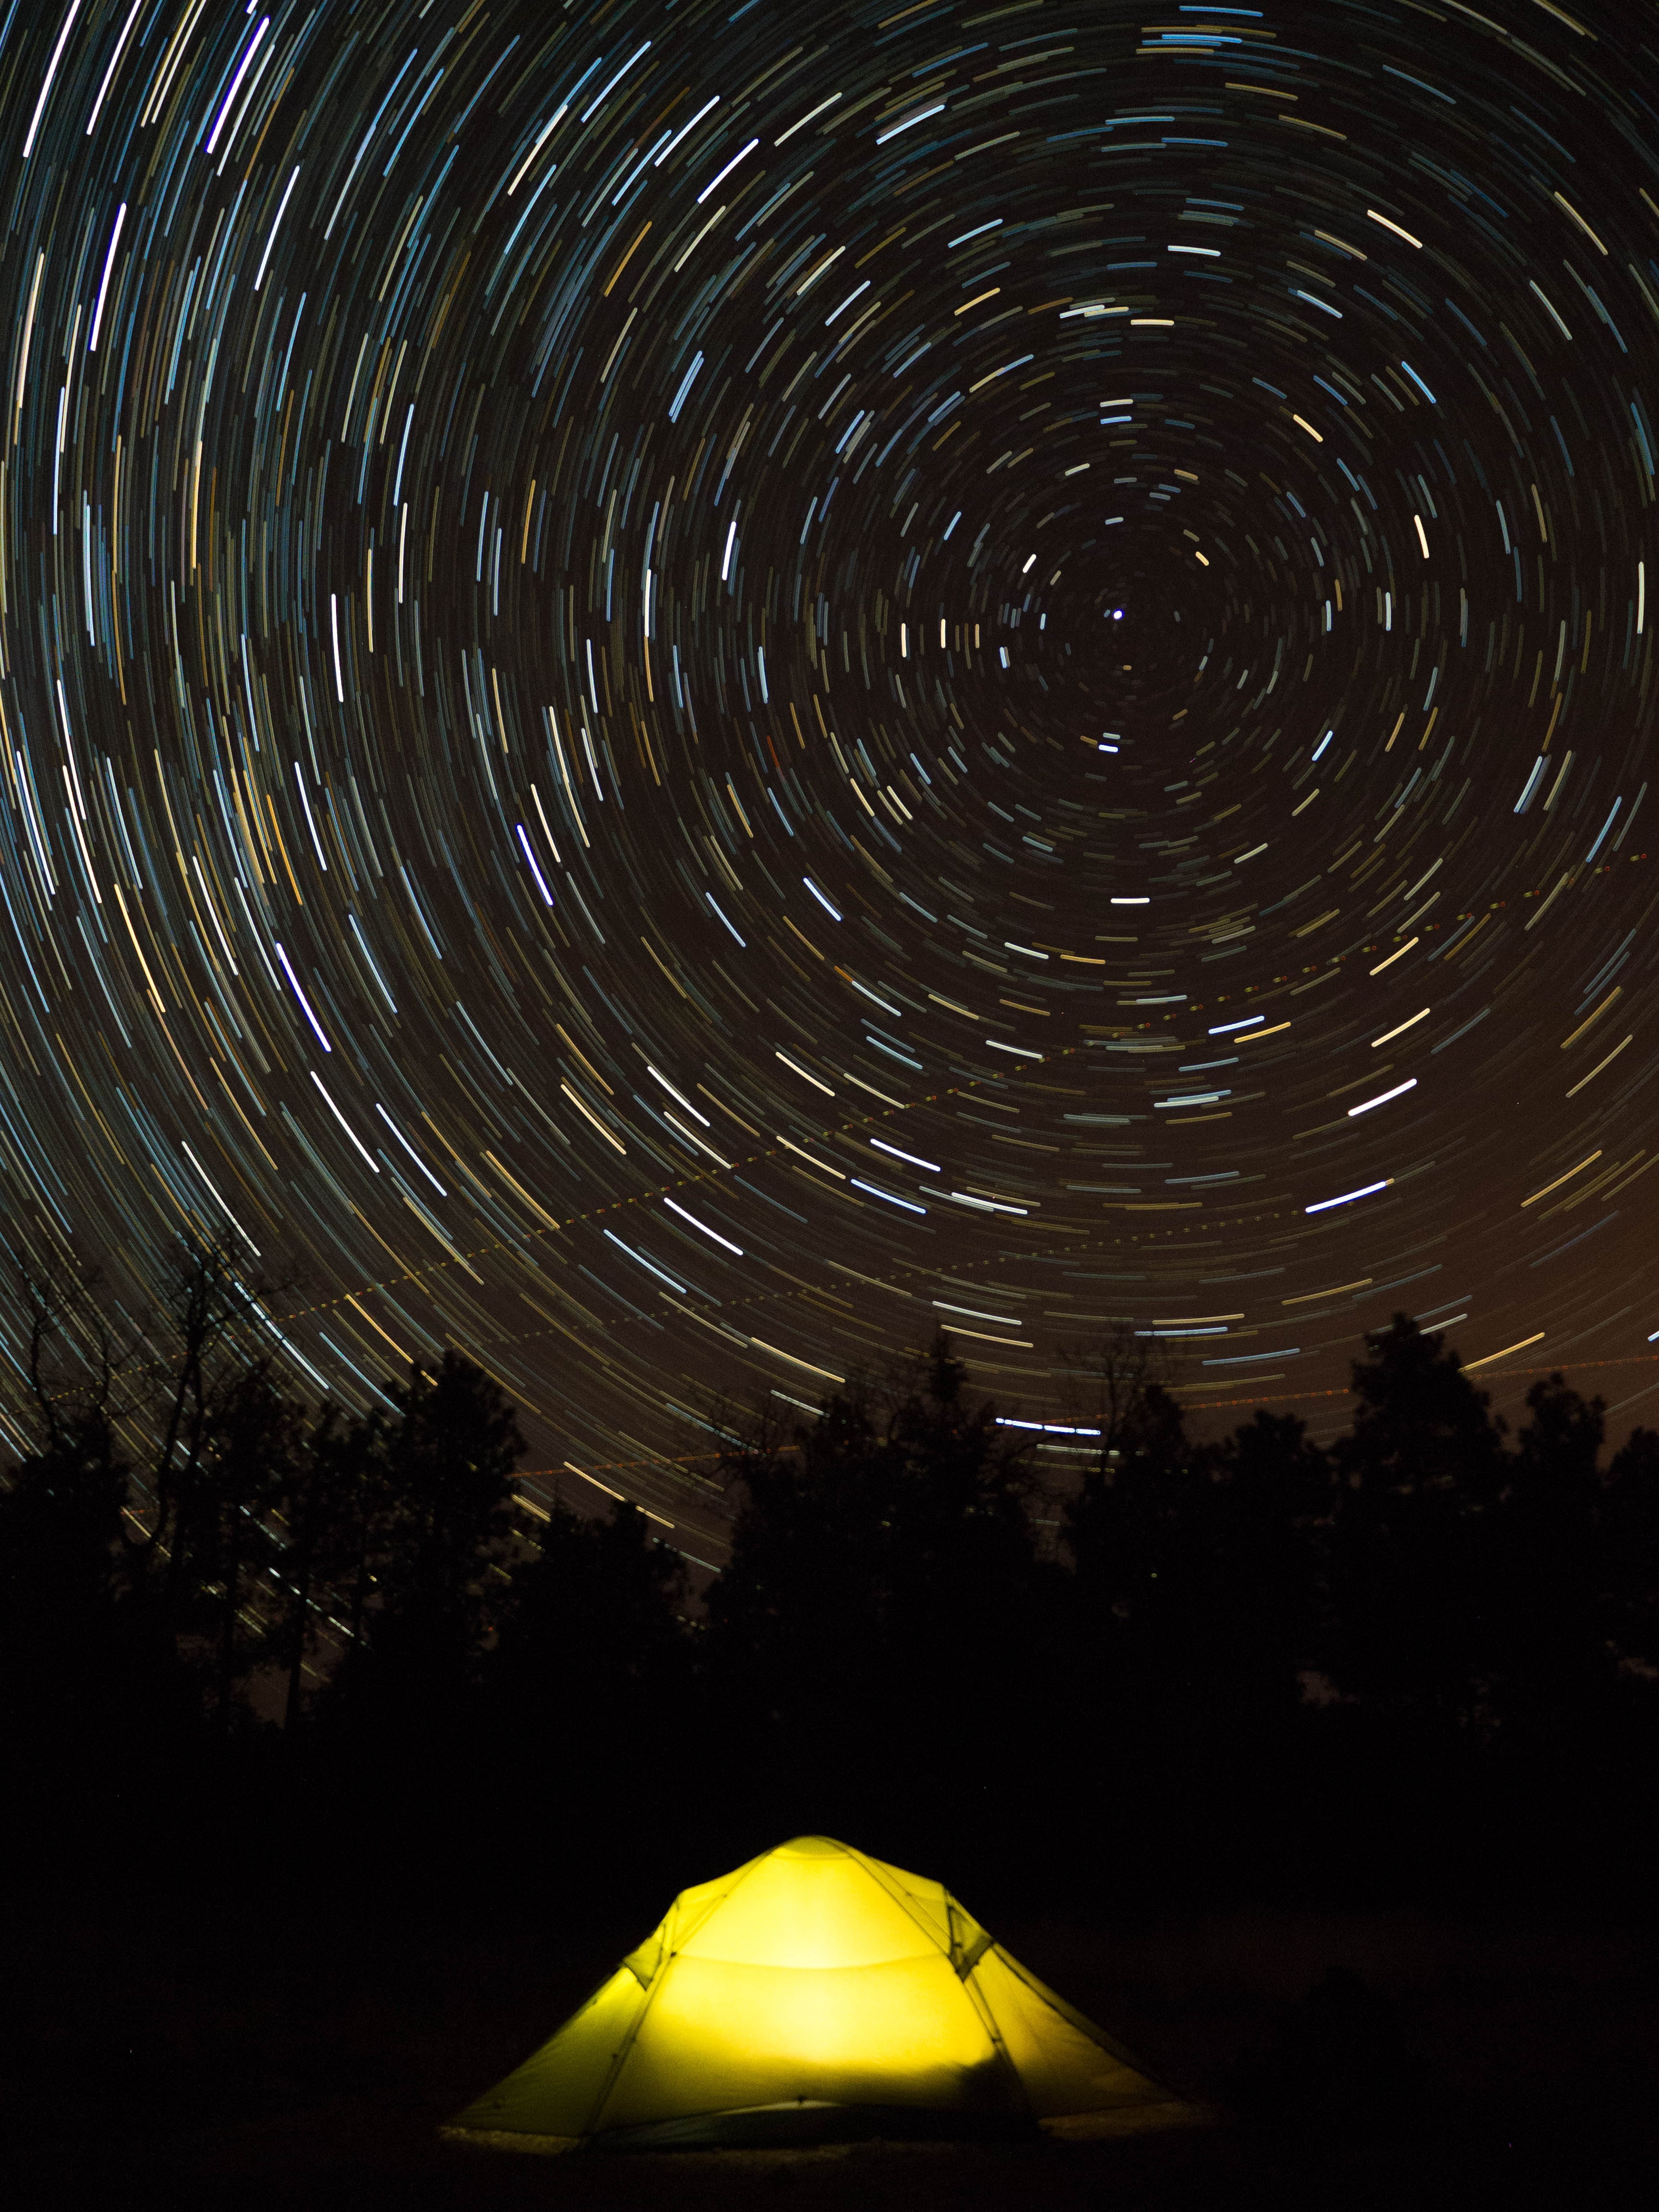 star trail photography of yellow camping tent